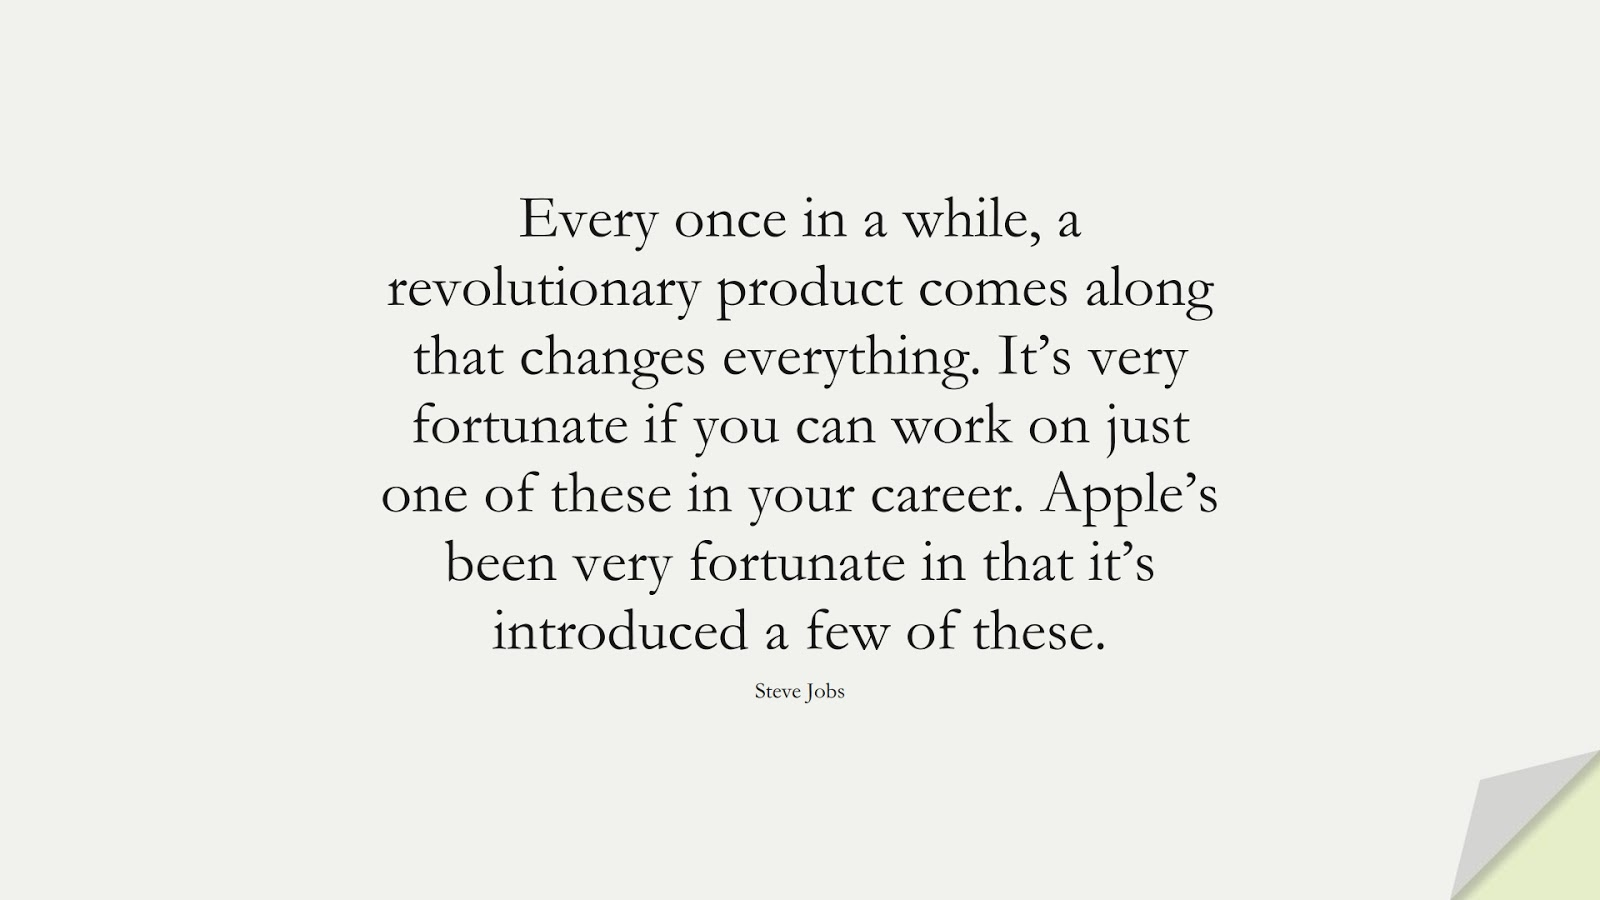 Every once in a while, a revolutionary product comes along that changes everything. It's very fortunate if you can work on just one of these in your career. Apple's been very fortunate in that it's introduced a few of these. (Steve Jobs);  #SteveJobsQuotes